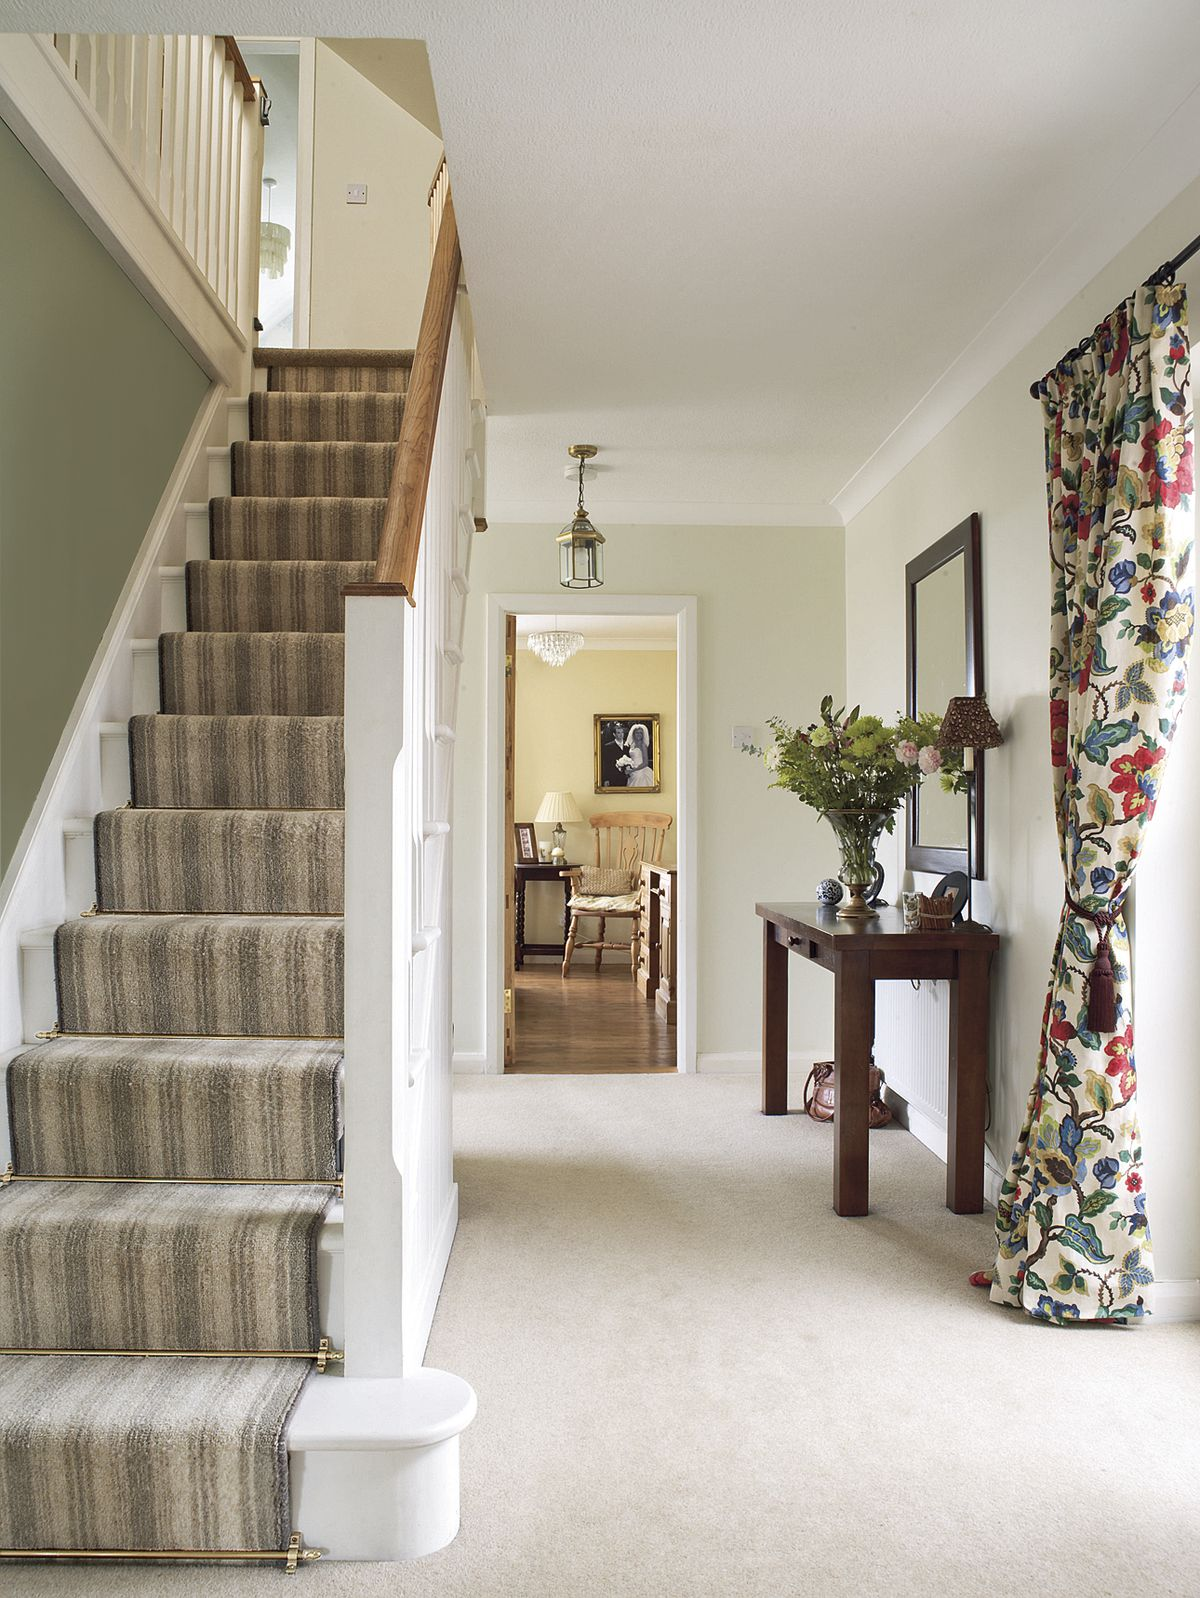 13 Thrifty Ways To Give Your House Vintage Charm This Old House